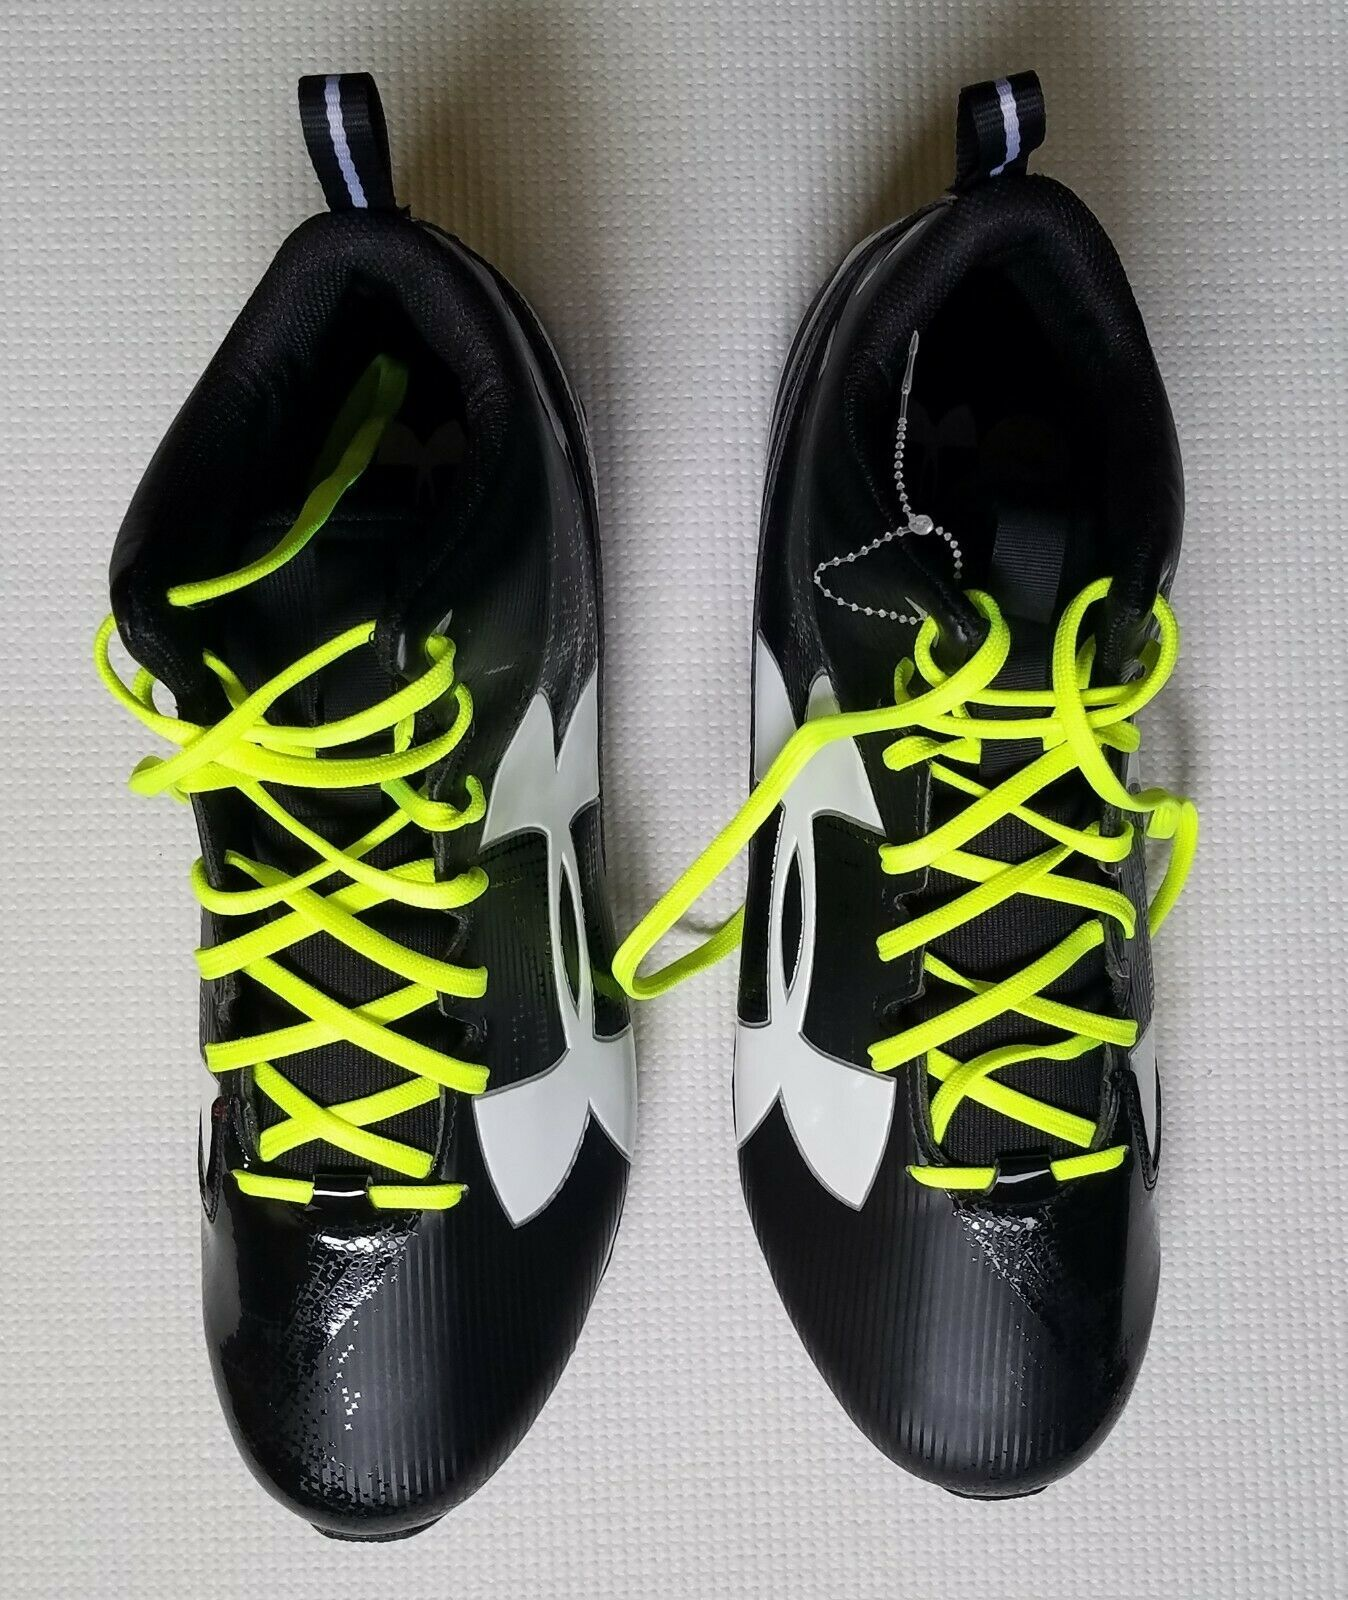 Under armour football cleats armour bound men s black